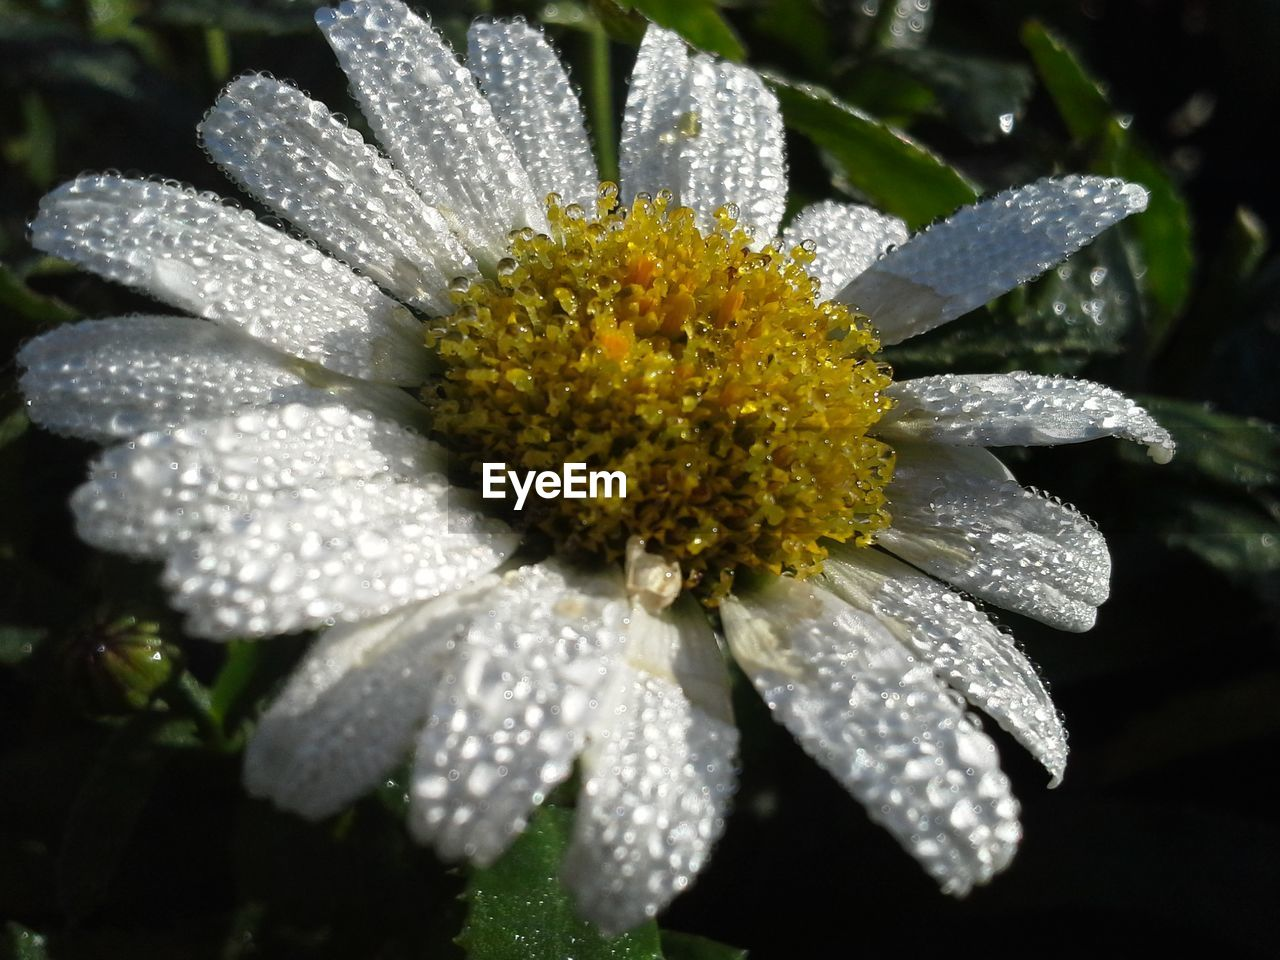 flower, fragility, petal, nature, beauty in nature, flower head, growth, drop, freshness, plant, botany, close-up, pollen, wet, day, water, outdoors, no people, blooming, leaf